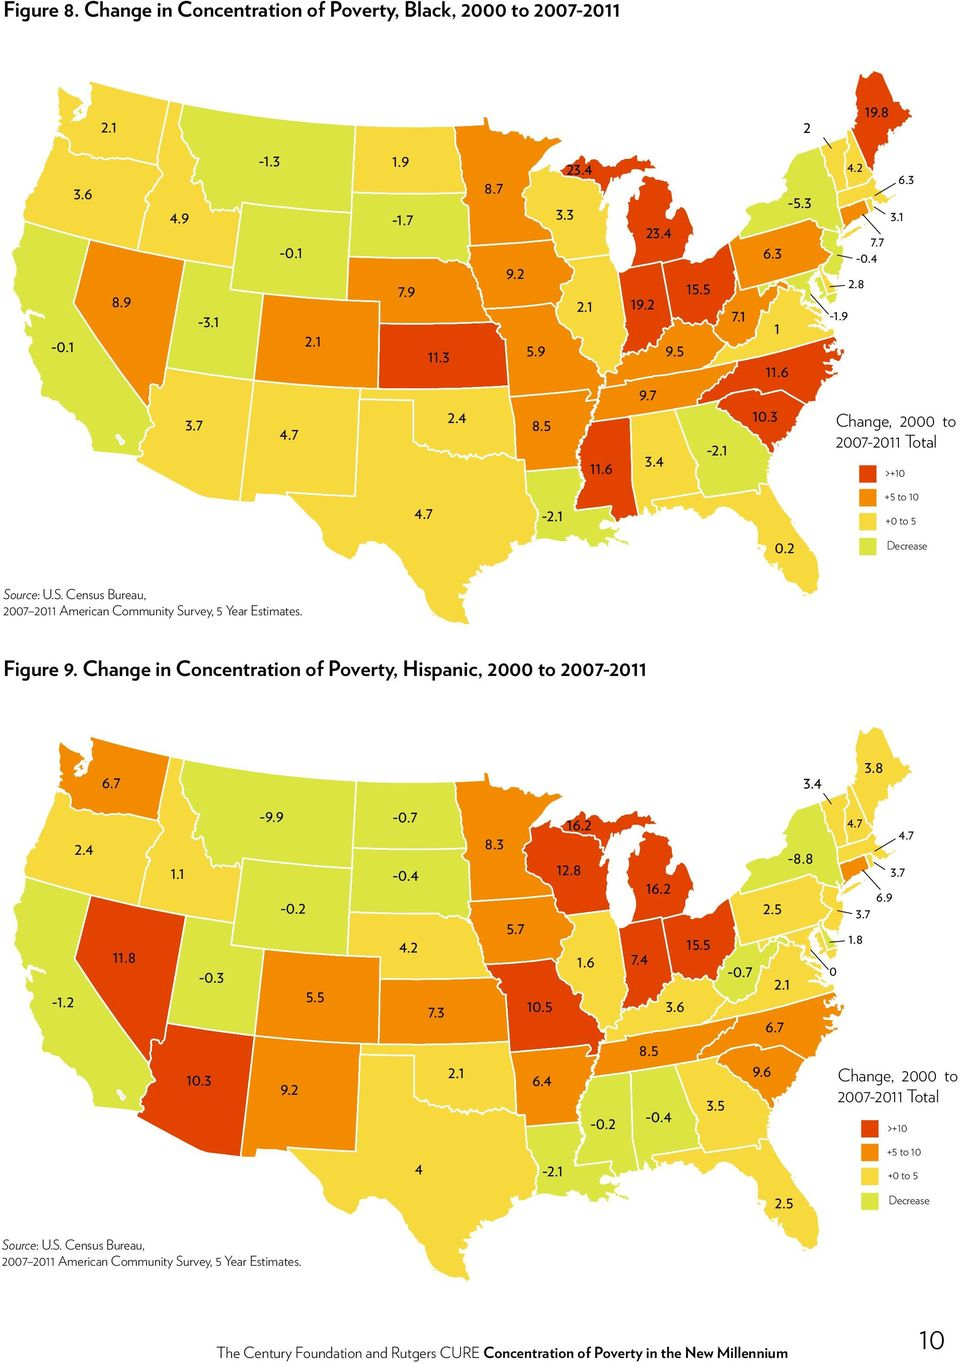 urce: U.S. Census Bureau, 2007 2011 American Community Survey, 5 Year Estimates. Figure 9. Change in Concentration of Poverty, Hispanic, 2000 to 2007-2011 6.7 3.4 3.8-1.2 2.4 11.8 1.1-0.3 10.3-9.9-0.